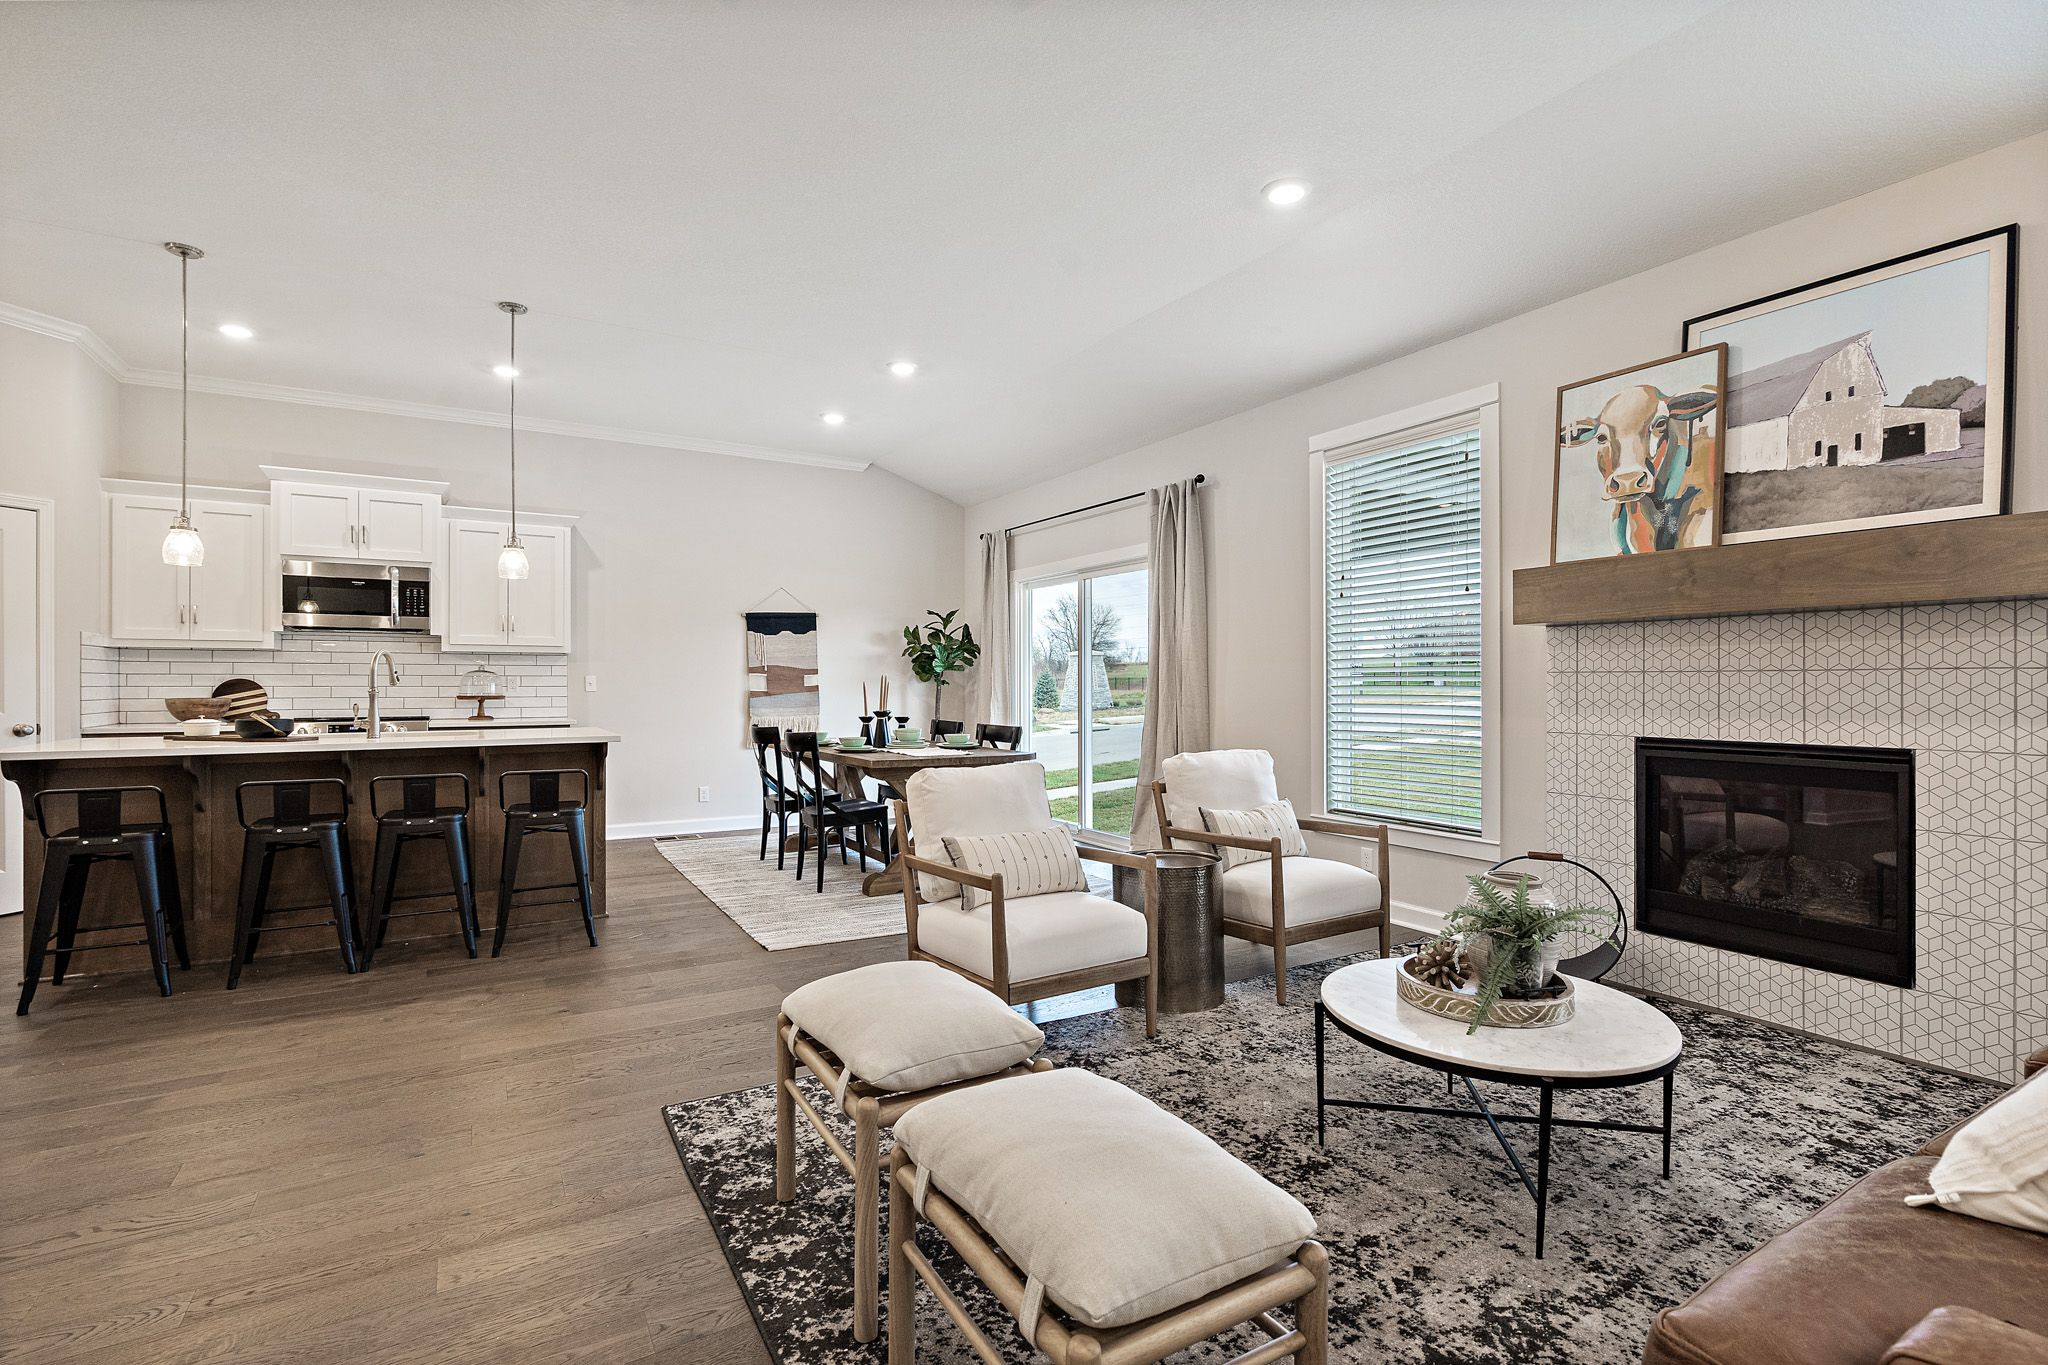 Living Area featured in the Westport - Care Free By Summit Homes in Kansas City, MO